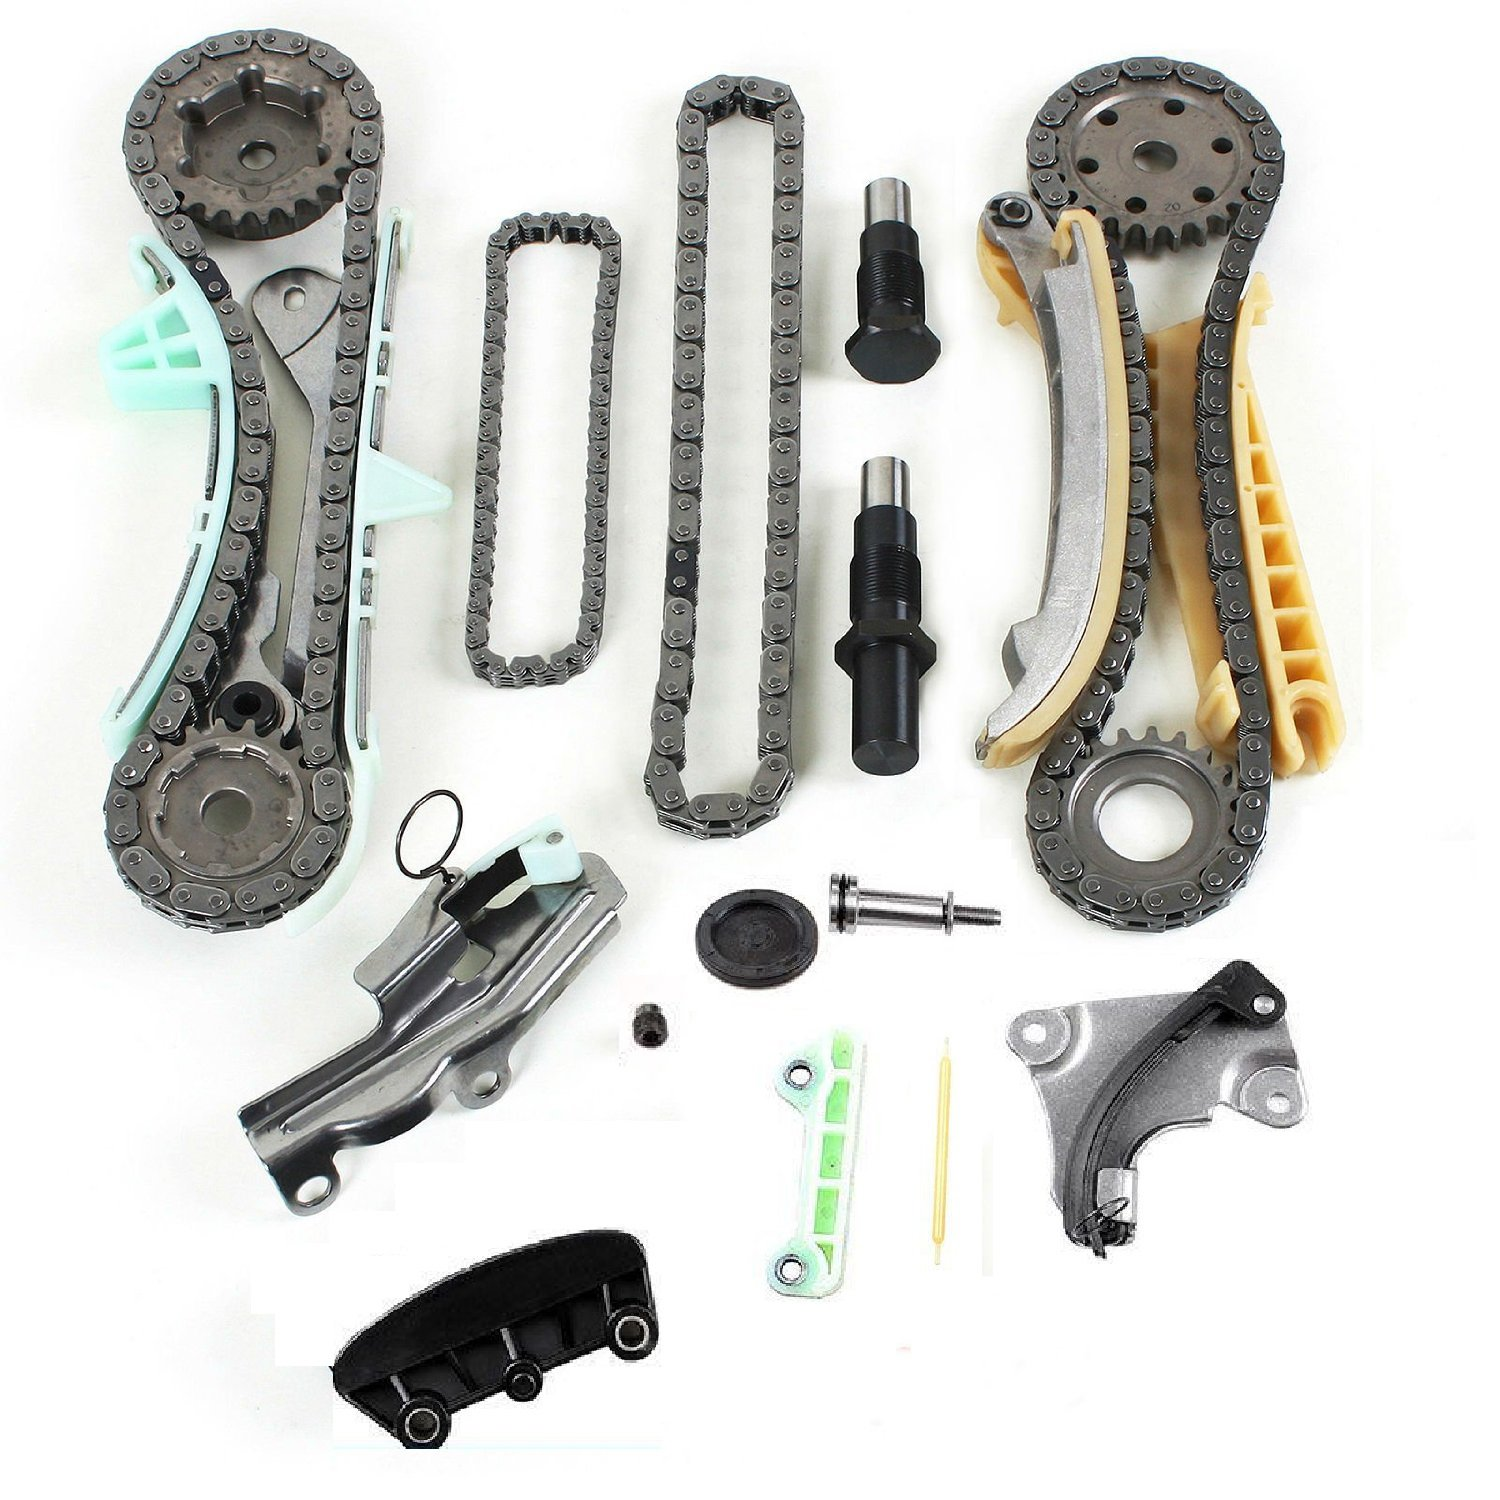 1997 Mercury Mountaineer Camshaft: 97-09 4.0L SOHC V6 Engine Timing Chain Kit W/ Gears For